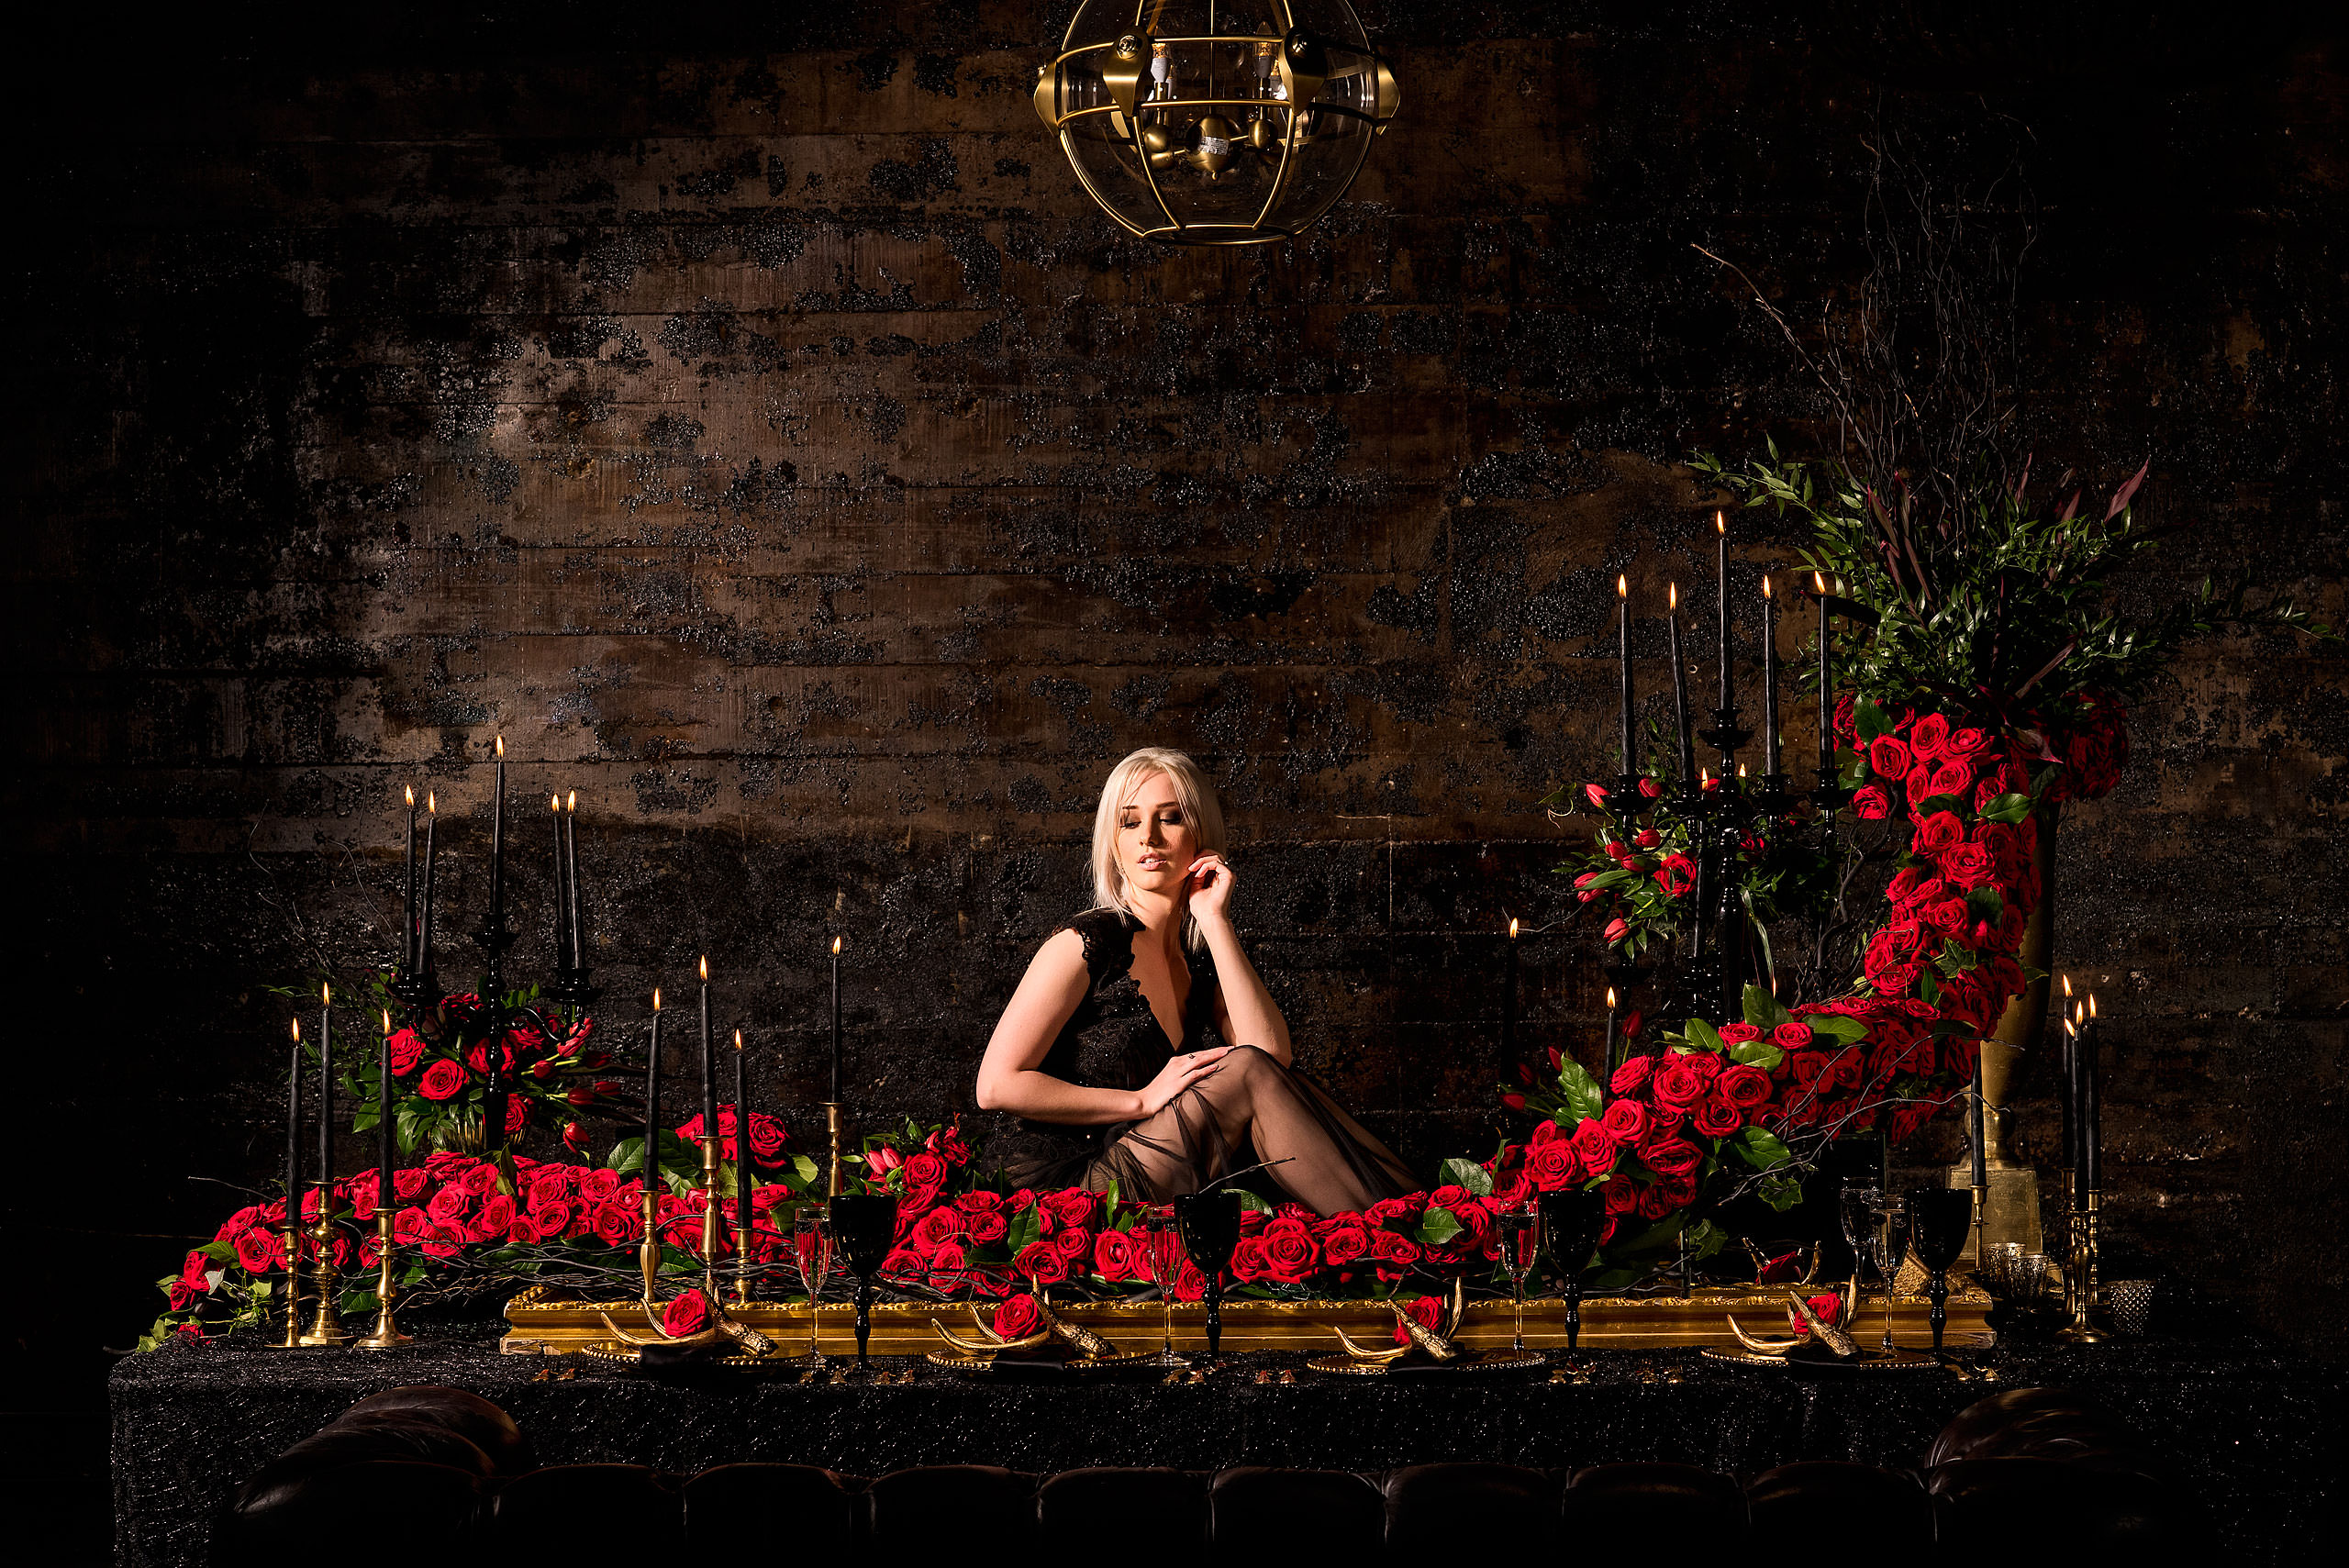 young female model posed on a table surrounded by roses